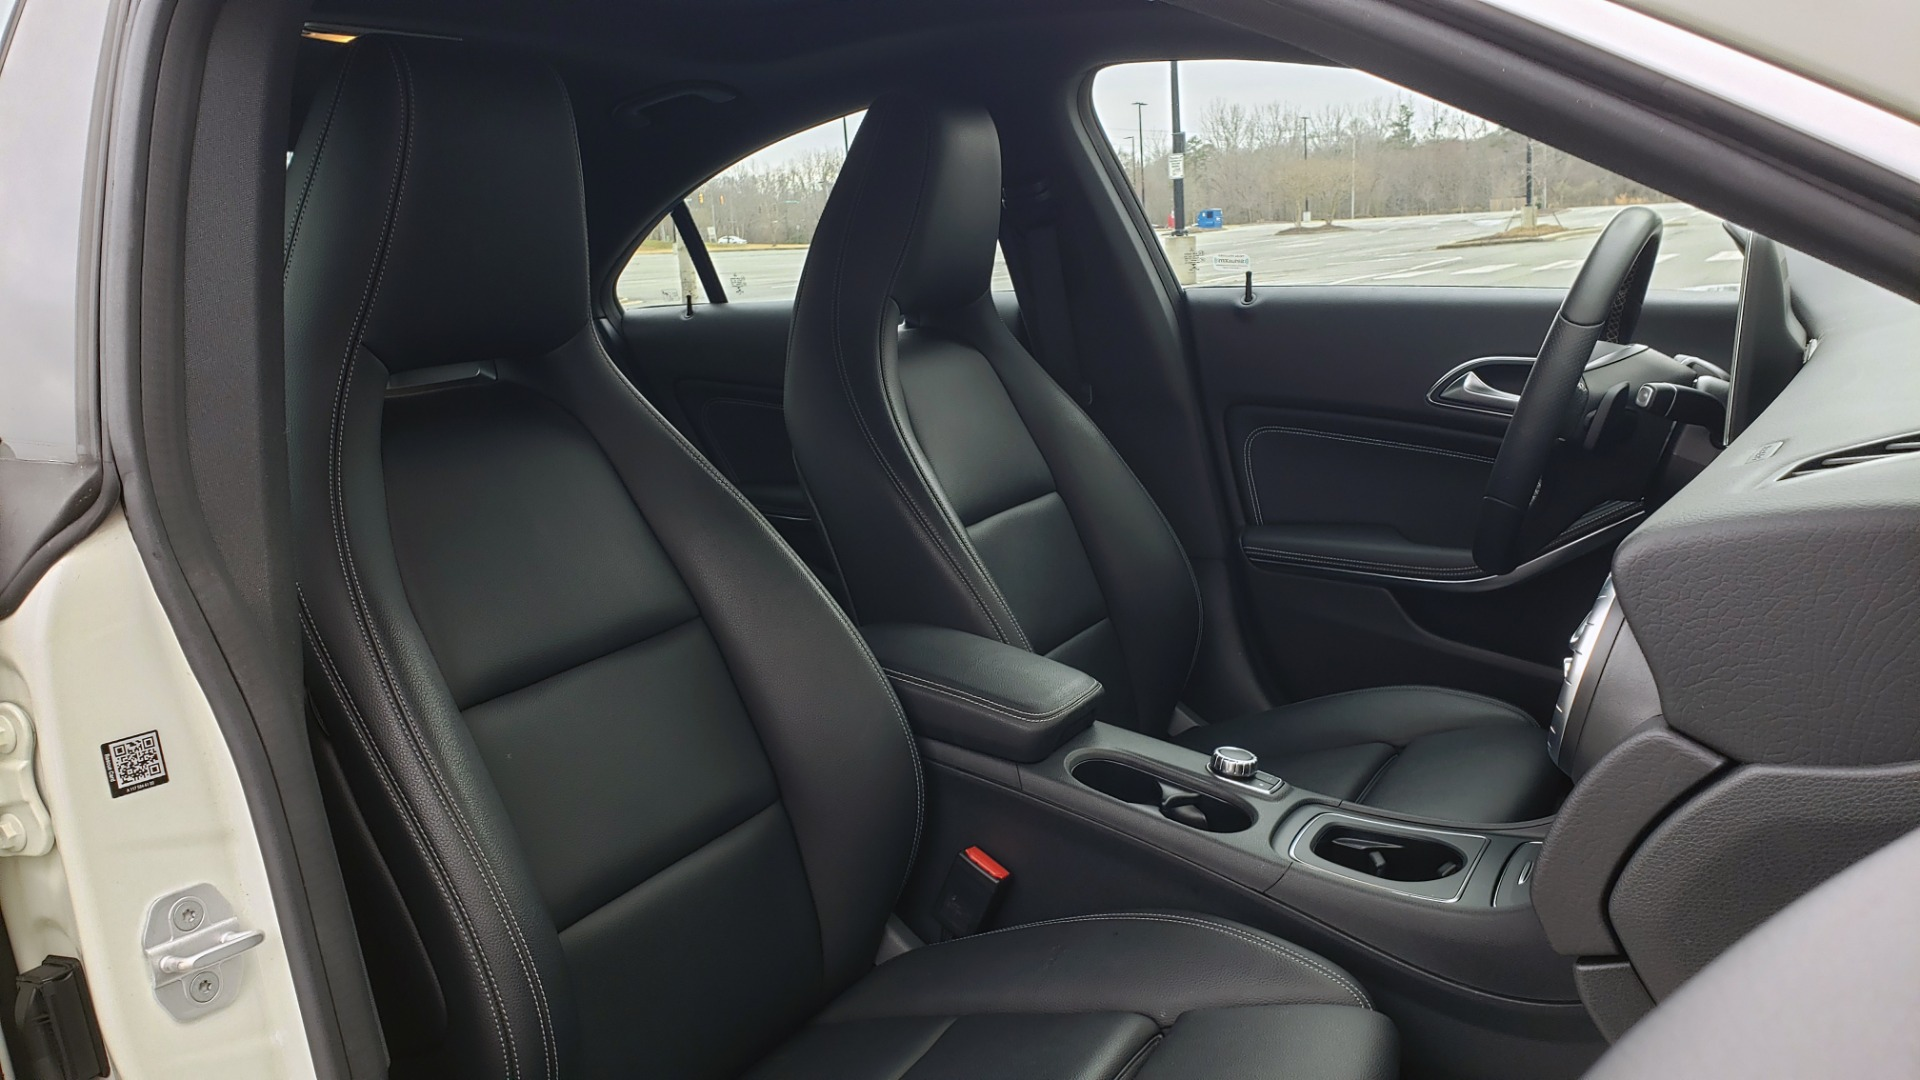 Used 2018 Mercedes-Benz CLA 250 PREMIUM / NAV / PANO-ROOF / APPLE CARPLAY / REARVIEW for sale $23,995 at Formula Imports in Charlotte NC 28227 66